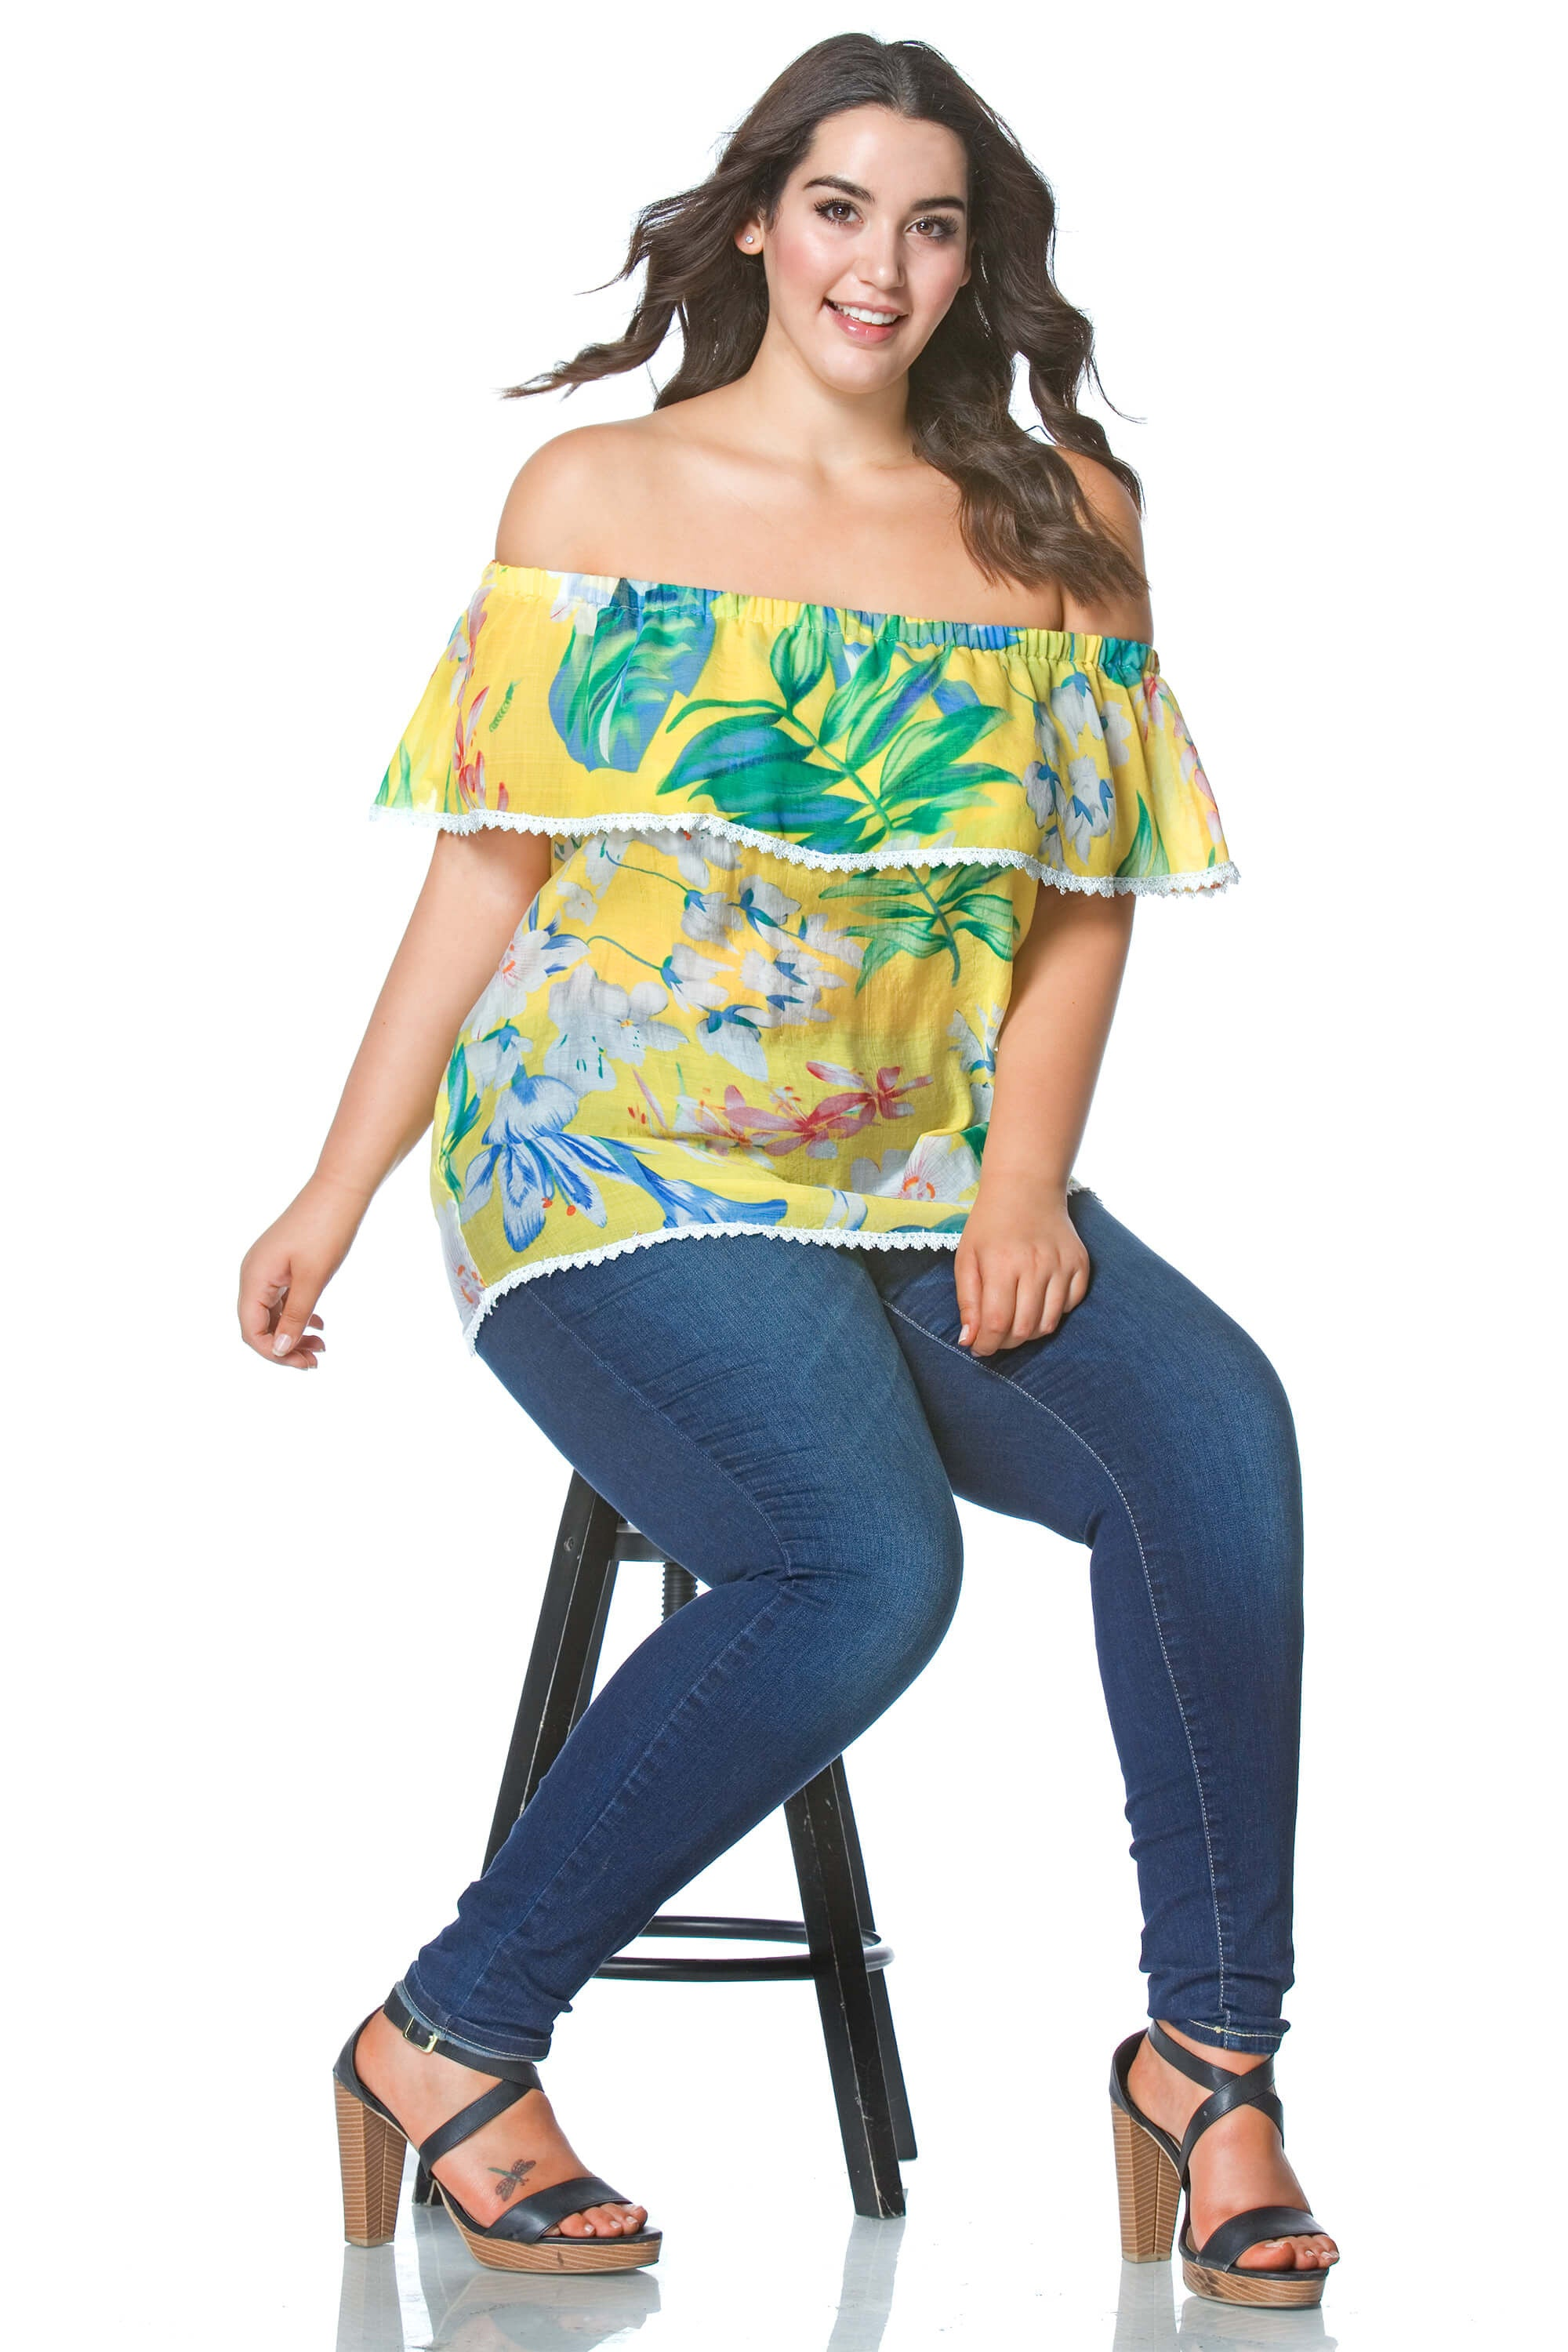 Lauren+ Tropical Off the Shoulder Top in Yellow, Plus Size - shoptoni.com